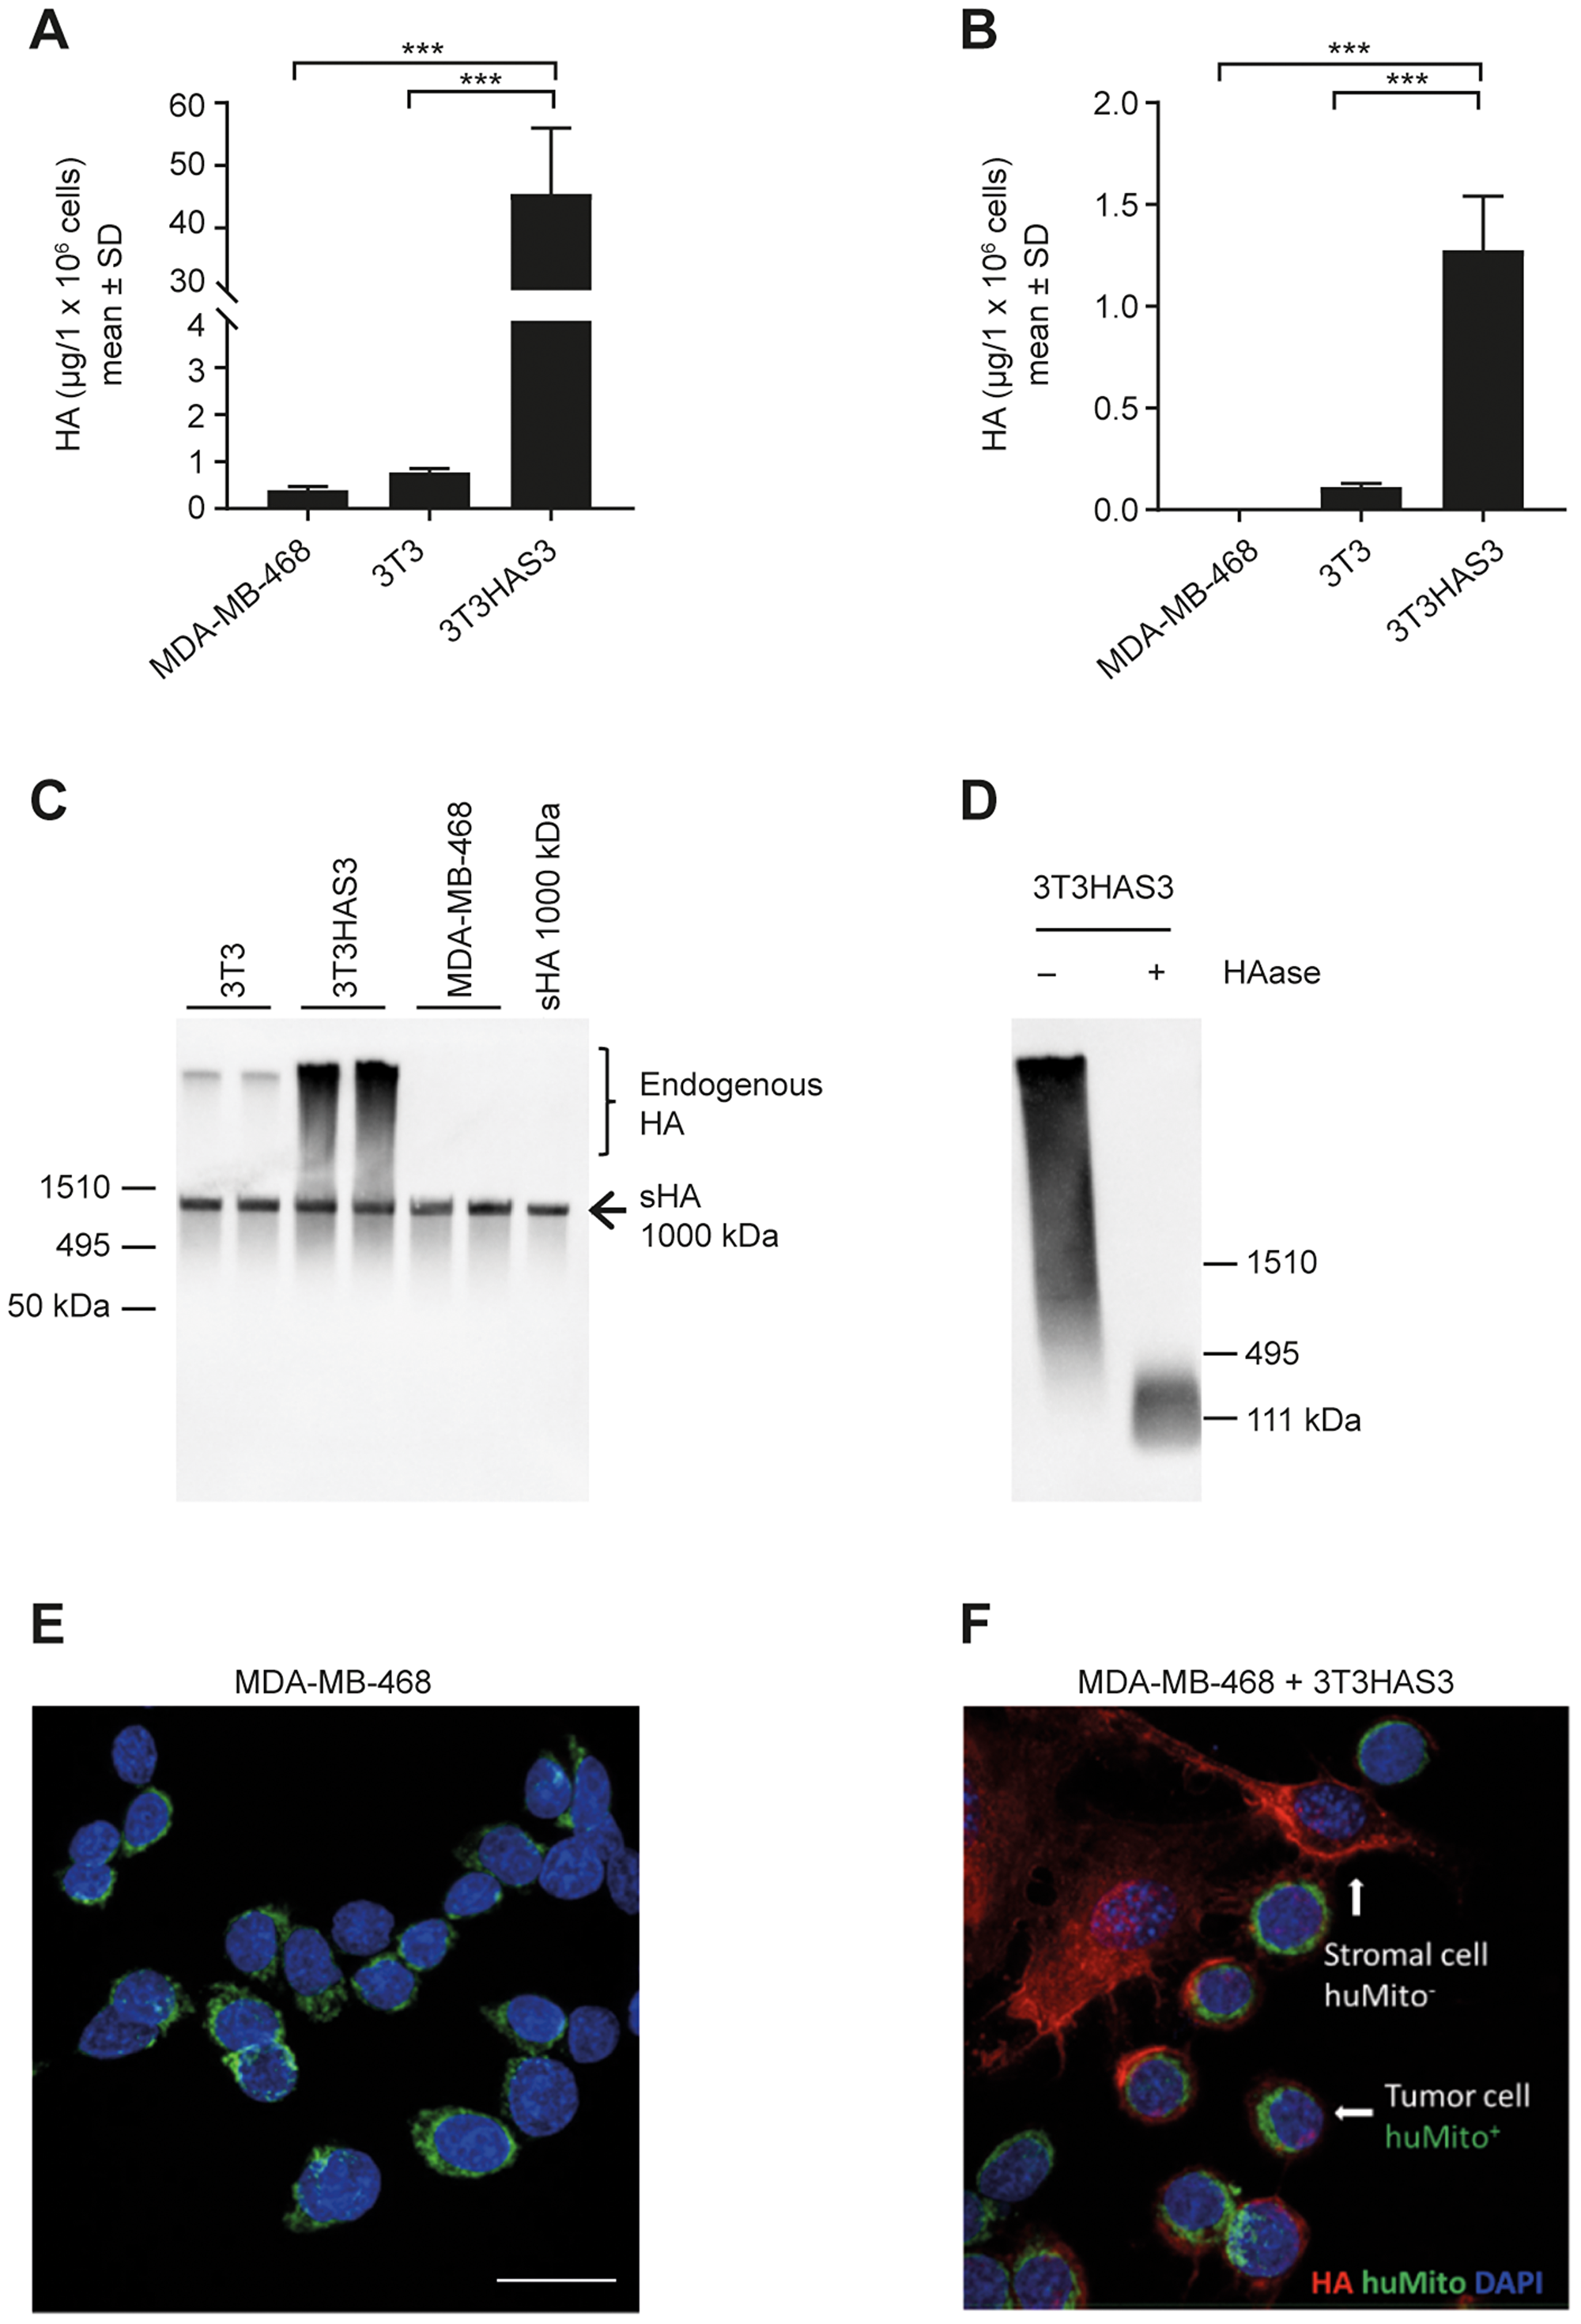 Engineered HA-accumulating fibroblast cells synthesized HMW HA that bound to MDA-MB-468 breast cancer cells in culture.